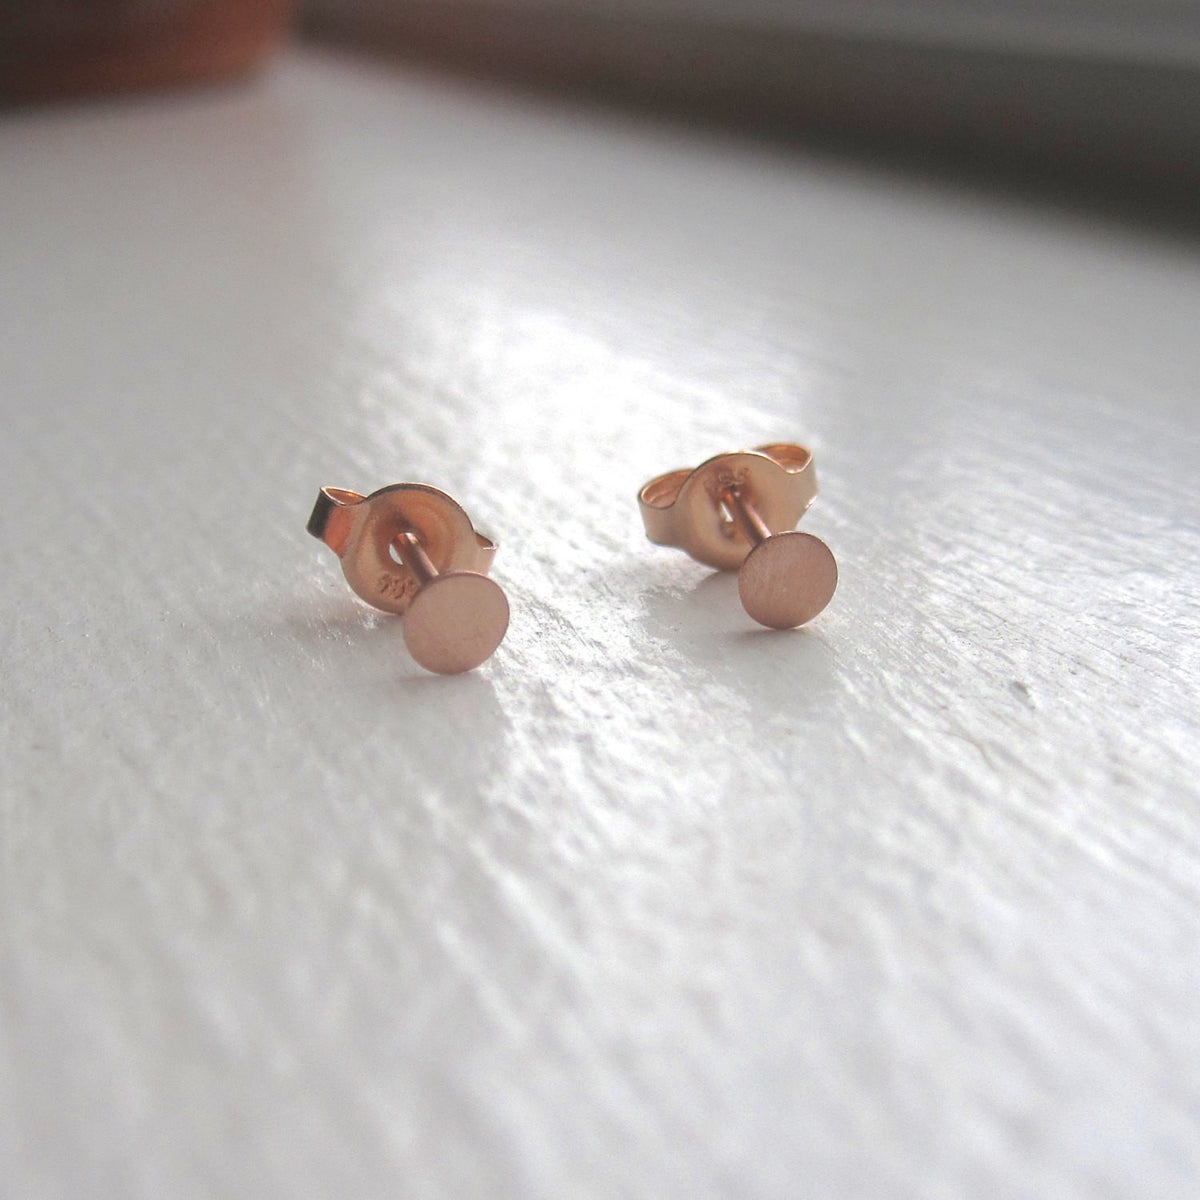 Hand-Crafted Elegance With These Solid 14k Rose Gold Studs - 0132 - Virginia Wynne Designs